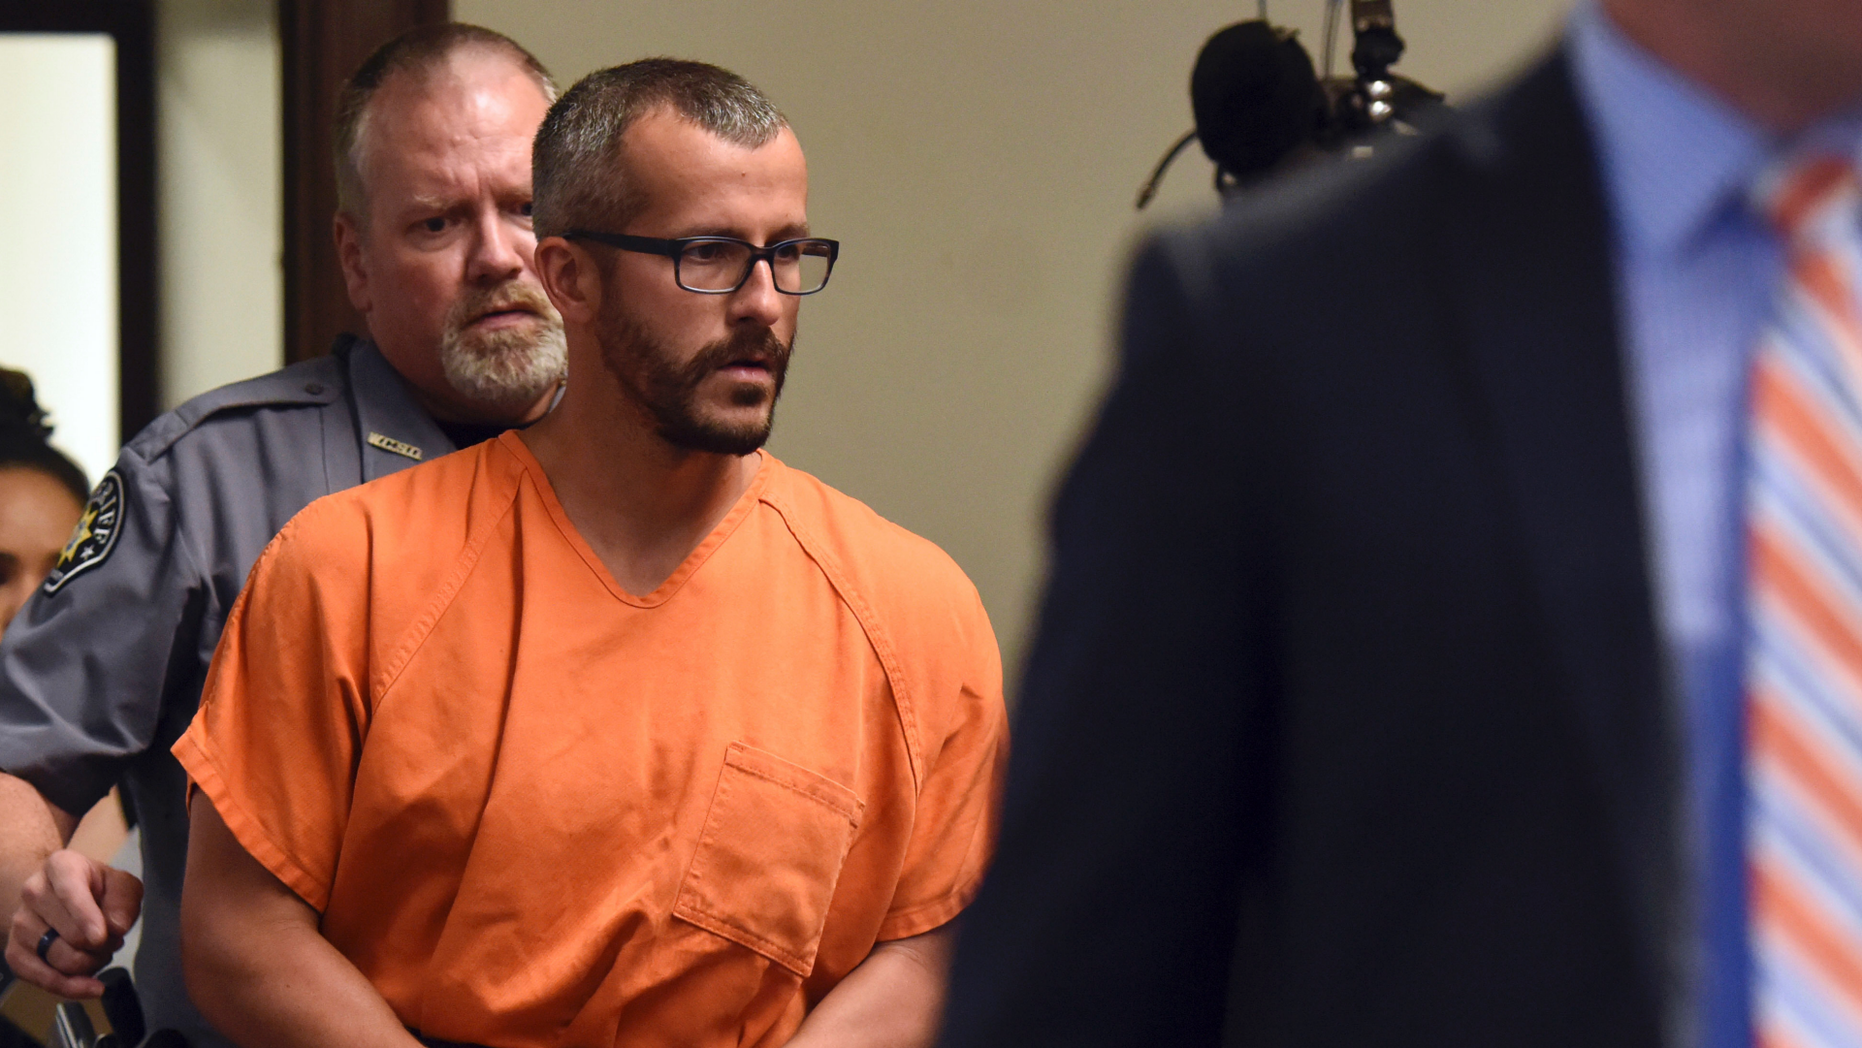 Colorado man gets life for killing pregnant wife, 2 kids